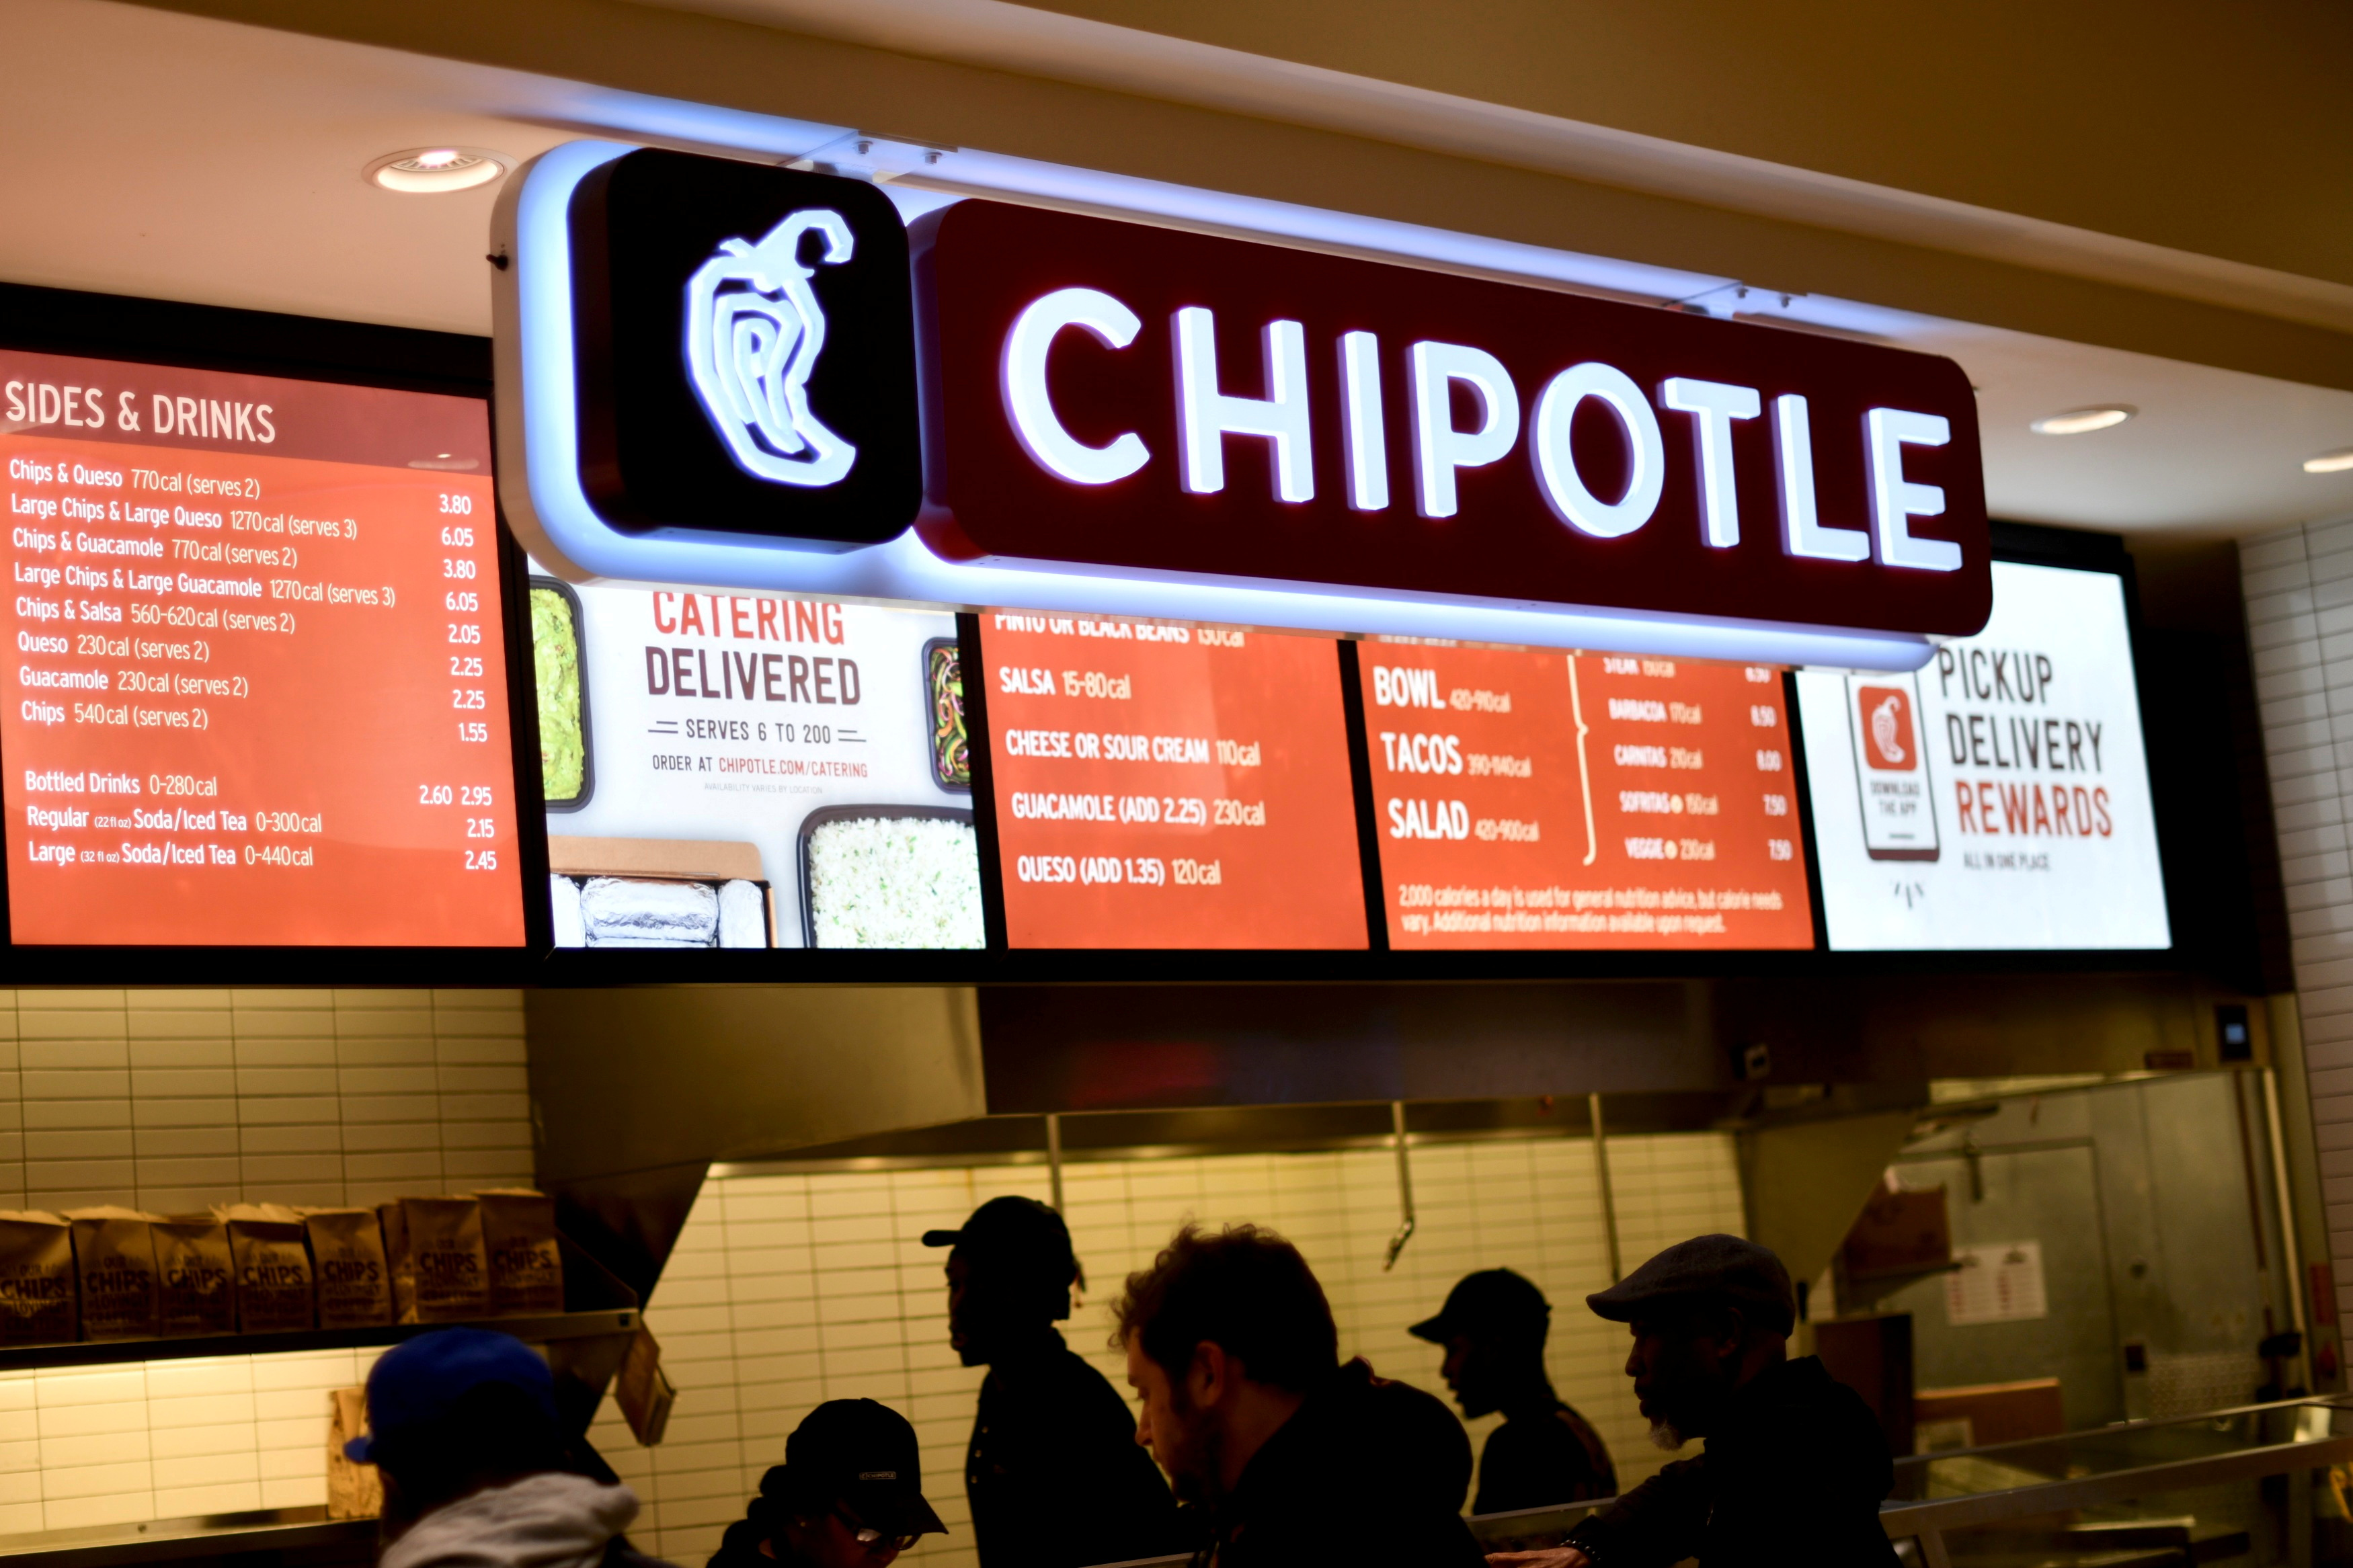 Customers order from a Chipotle restaurant as pre-Thanksgiving and Christmas holiday shopping accelerates at the King of Prussia Mall in King of Prussia, Pennsylvania, U.S. November 22, 2019. REUTERS/Mark Makela/File Photo